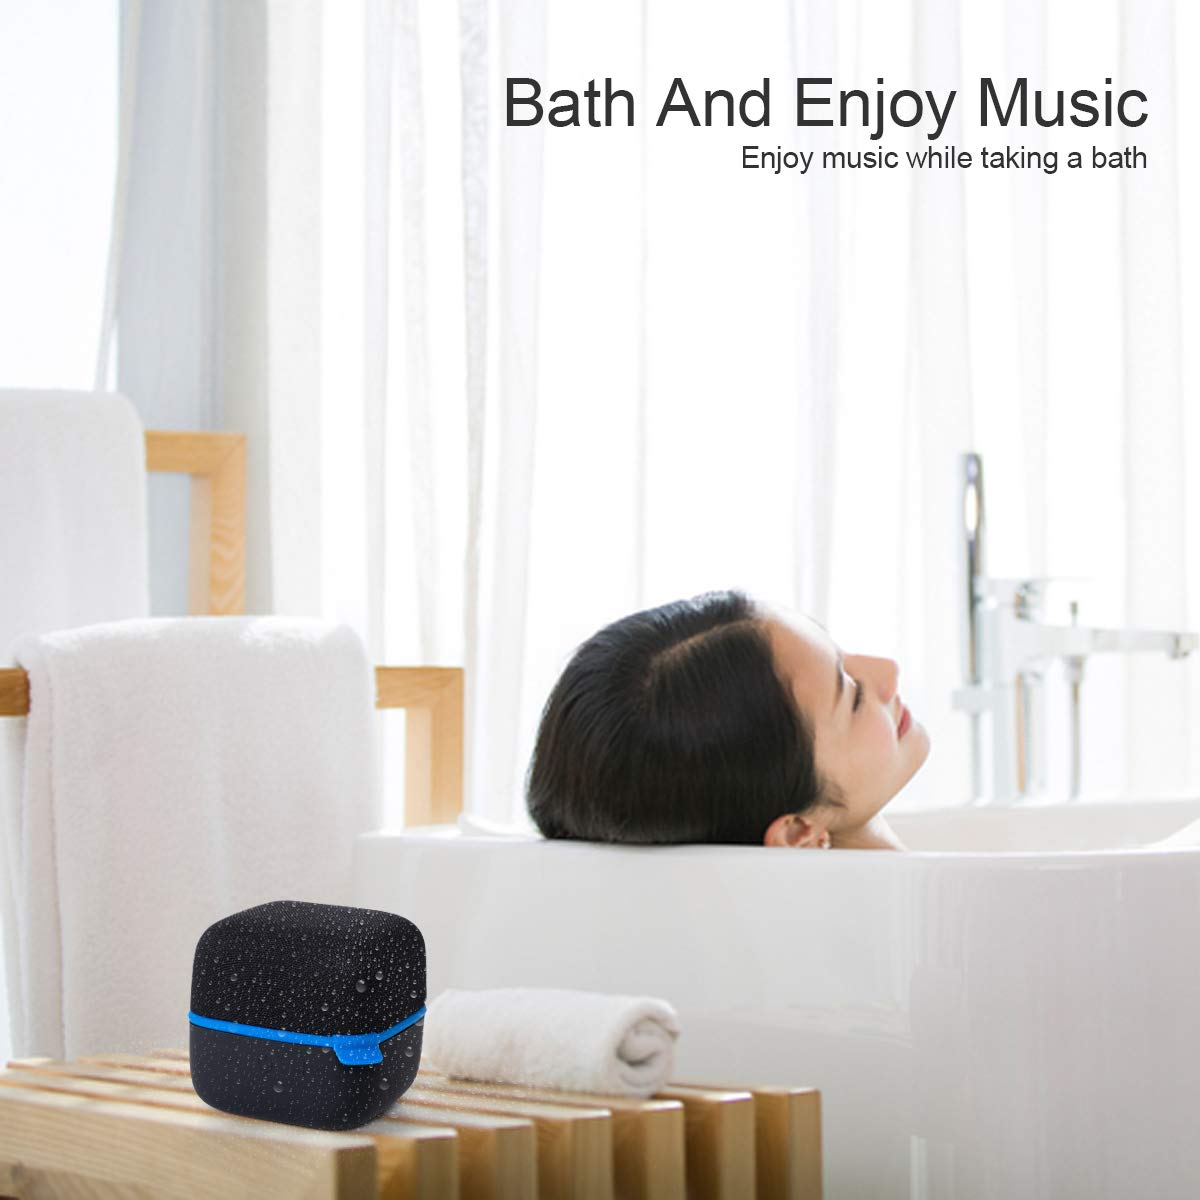 Haobell Waterproof Bluetooth Speakers Mini Wireless Portable Speaker HD Bass Built-in Microphone TF Card Handfree Call AUX Input for Home Outdoor Beach Sport Shower Silicon(Black) by Haobell (Image #5)